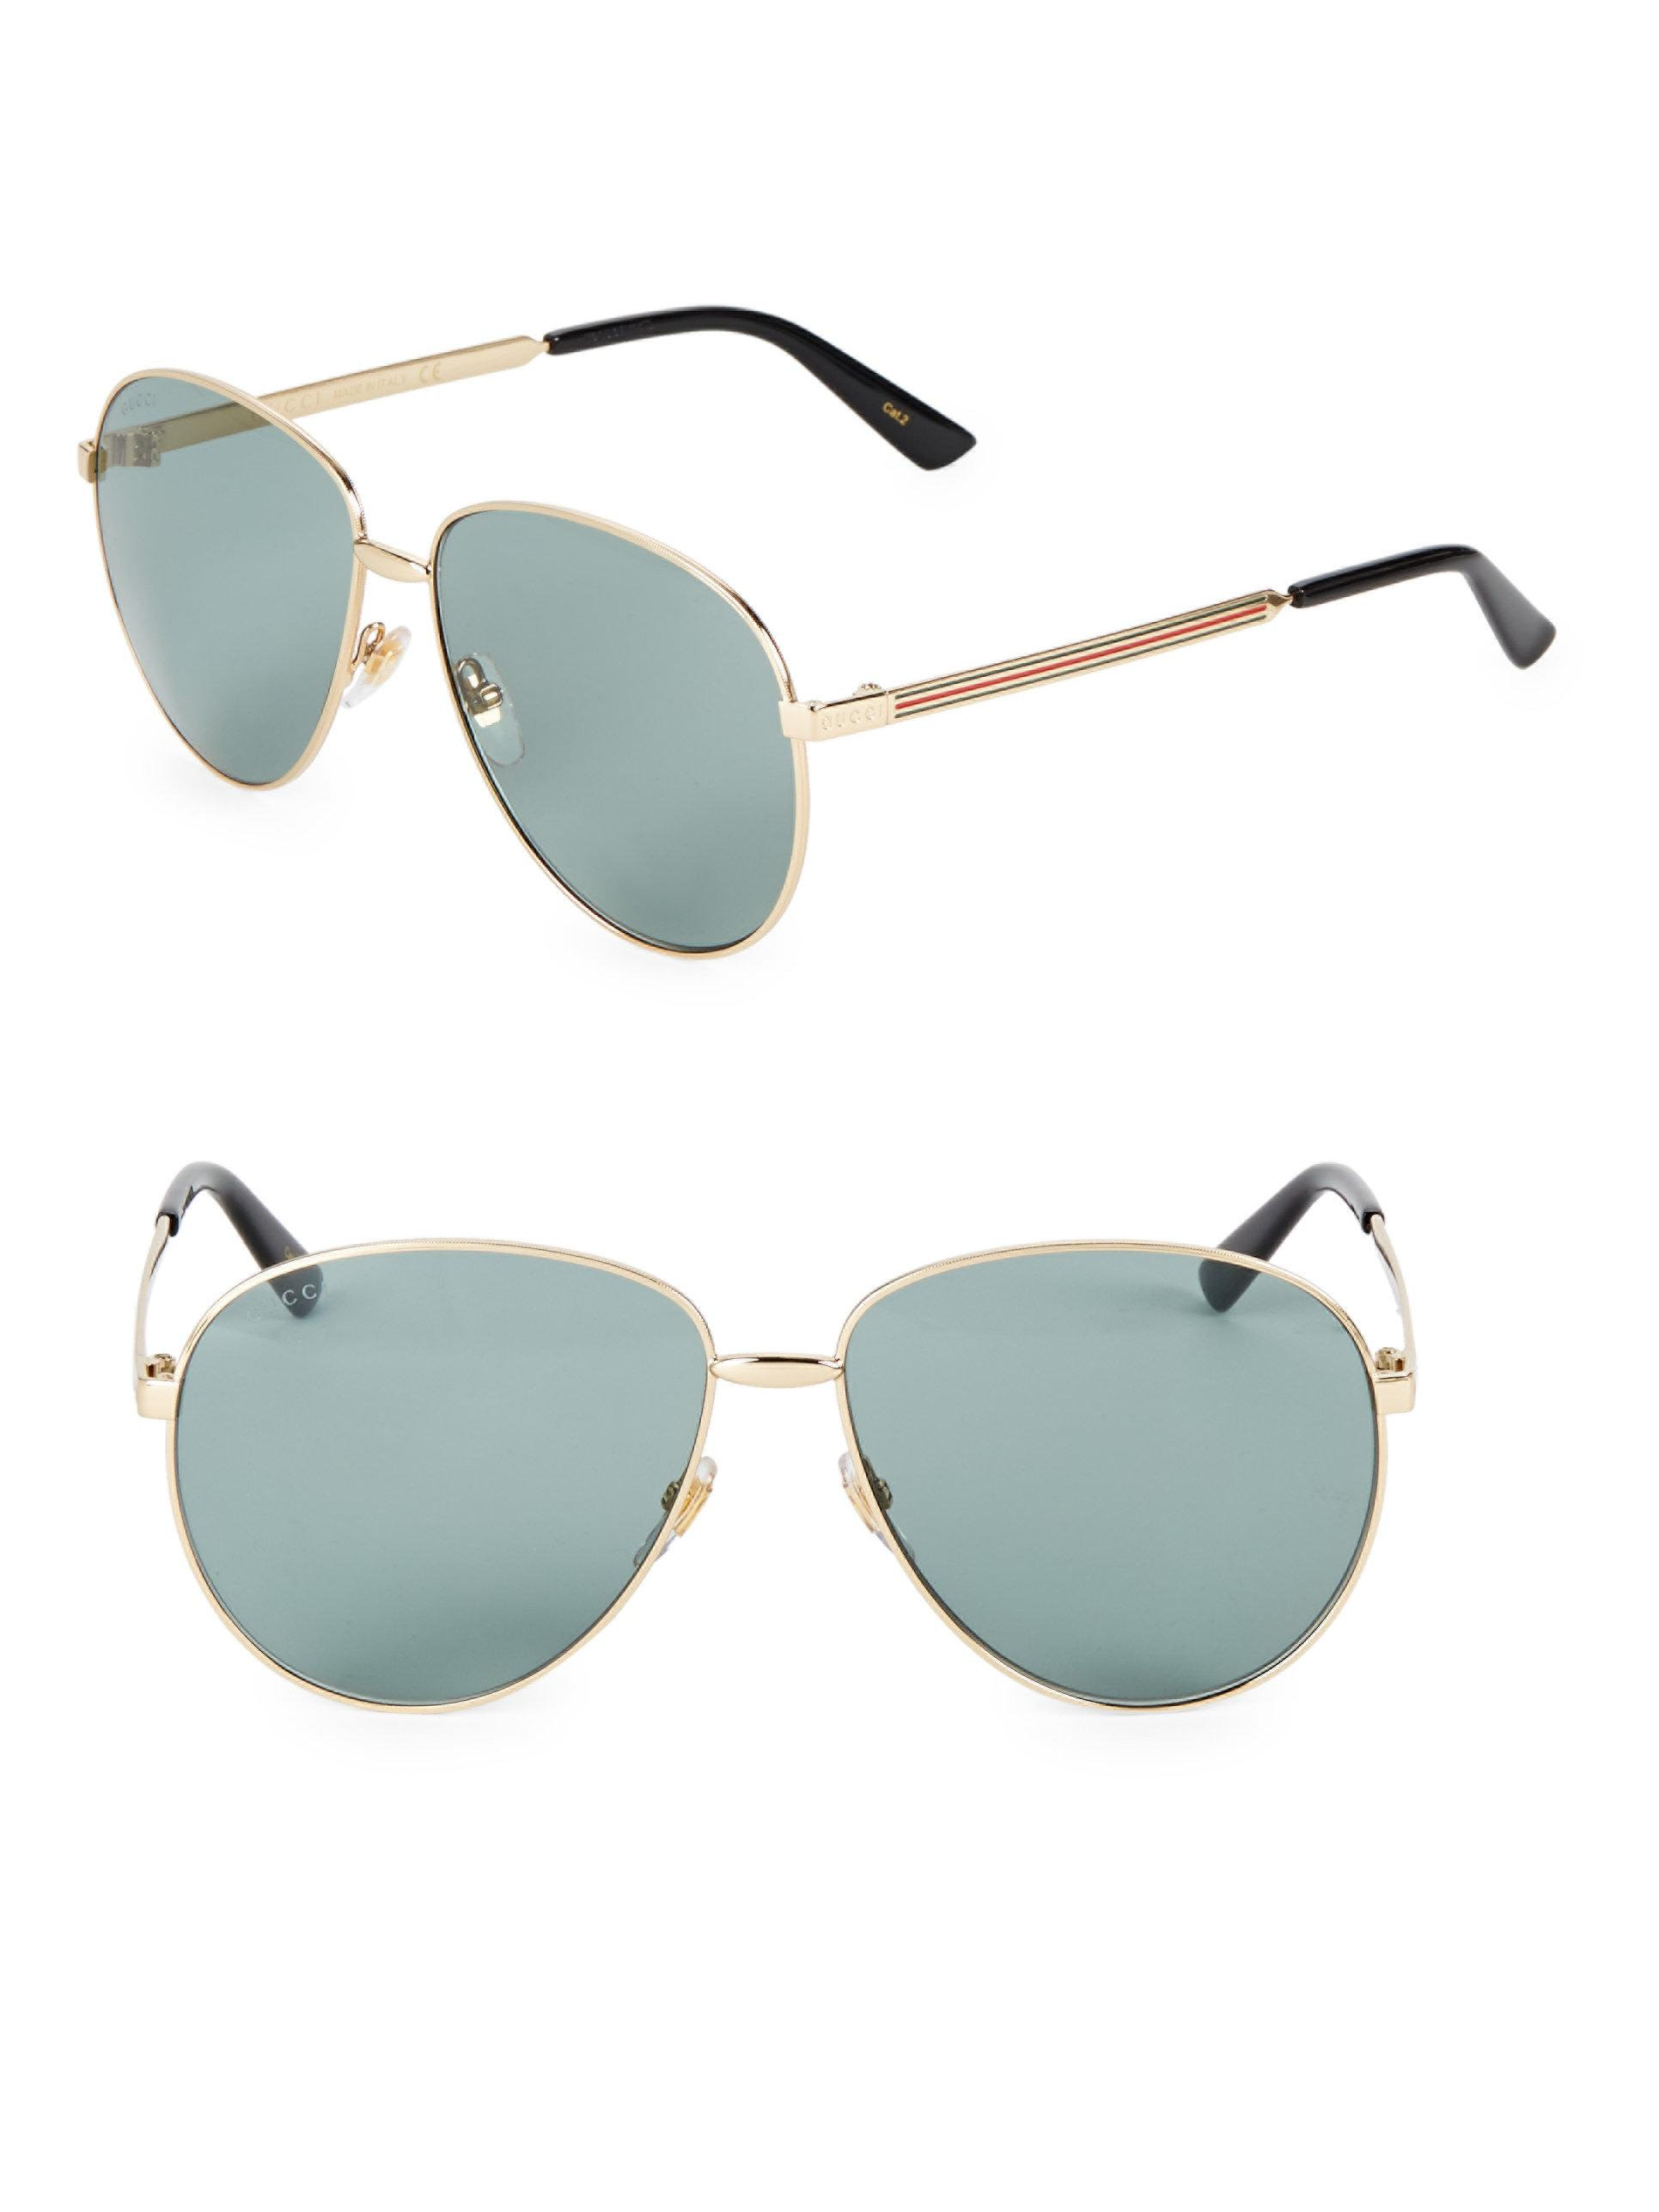 d9634ffc8c Gucci Women  39 s Aviator Sunglasses - Gold in Metallic - Lyst